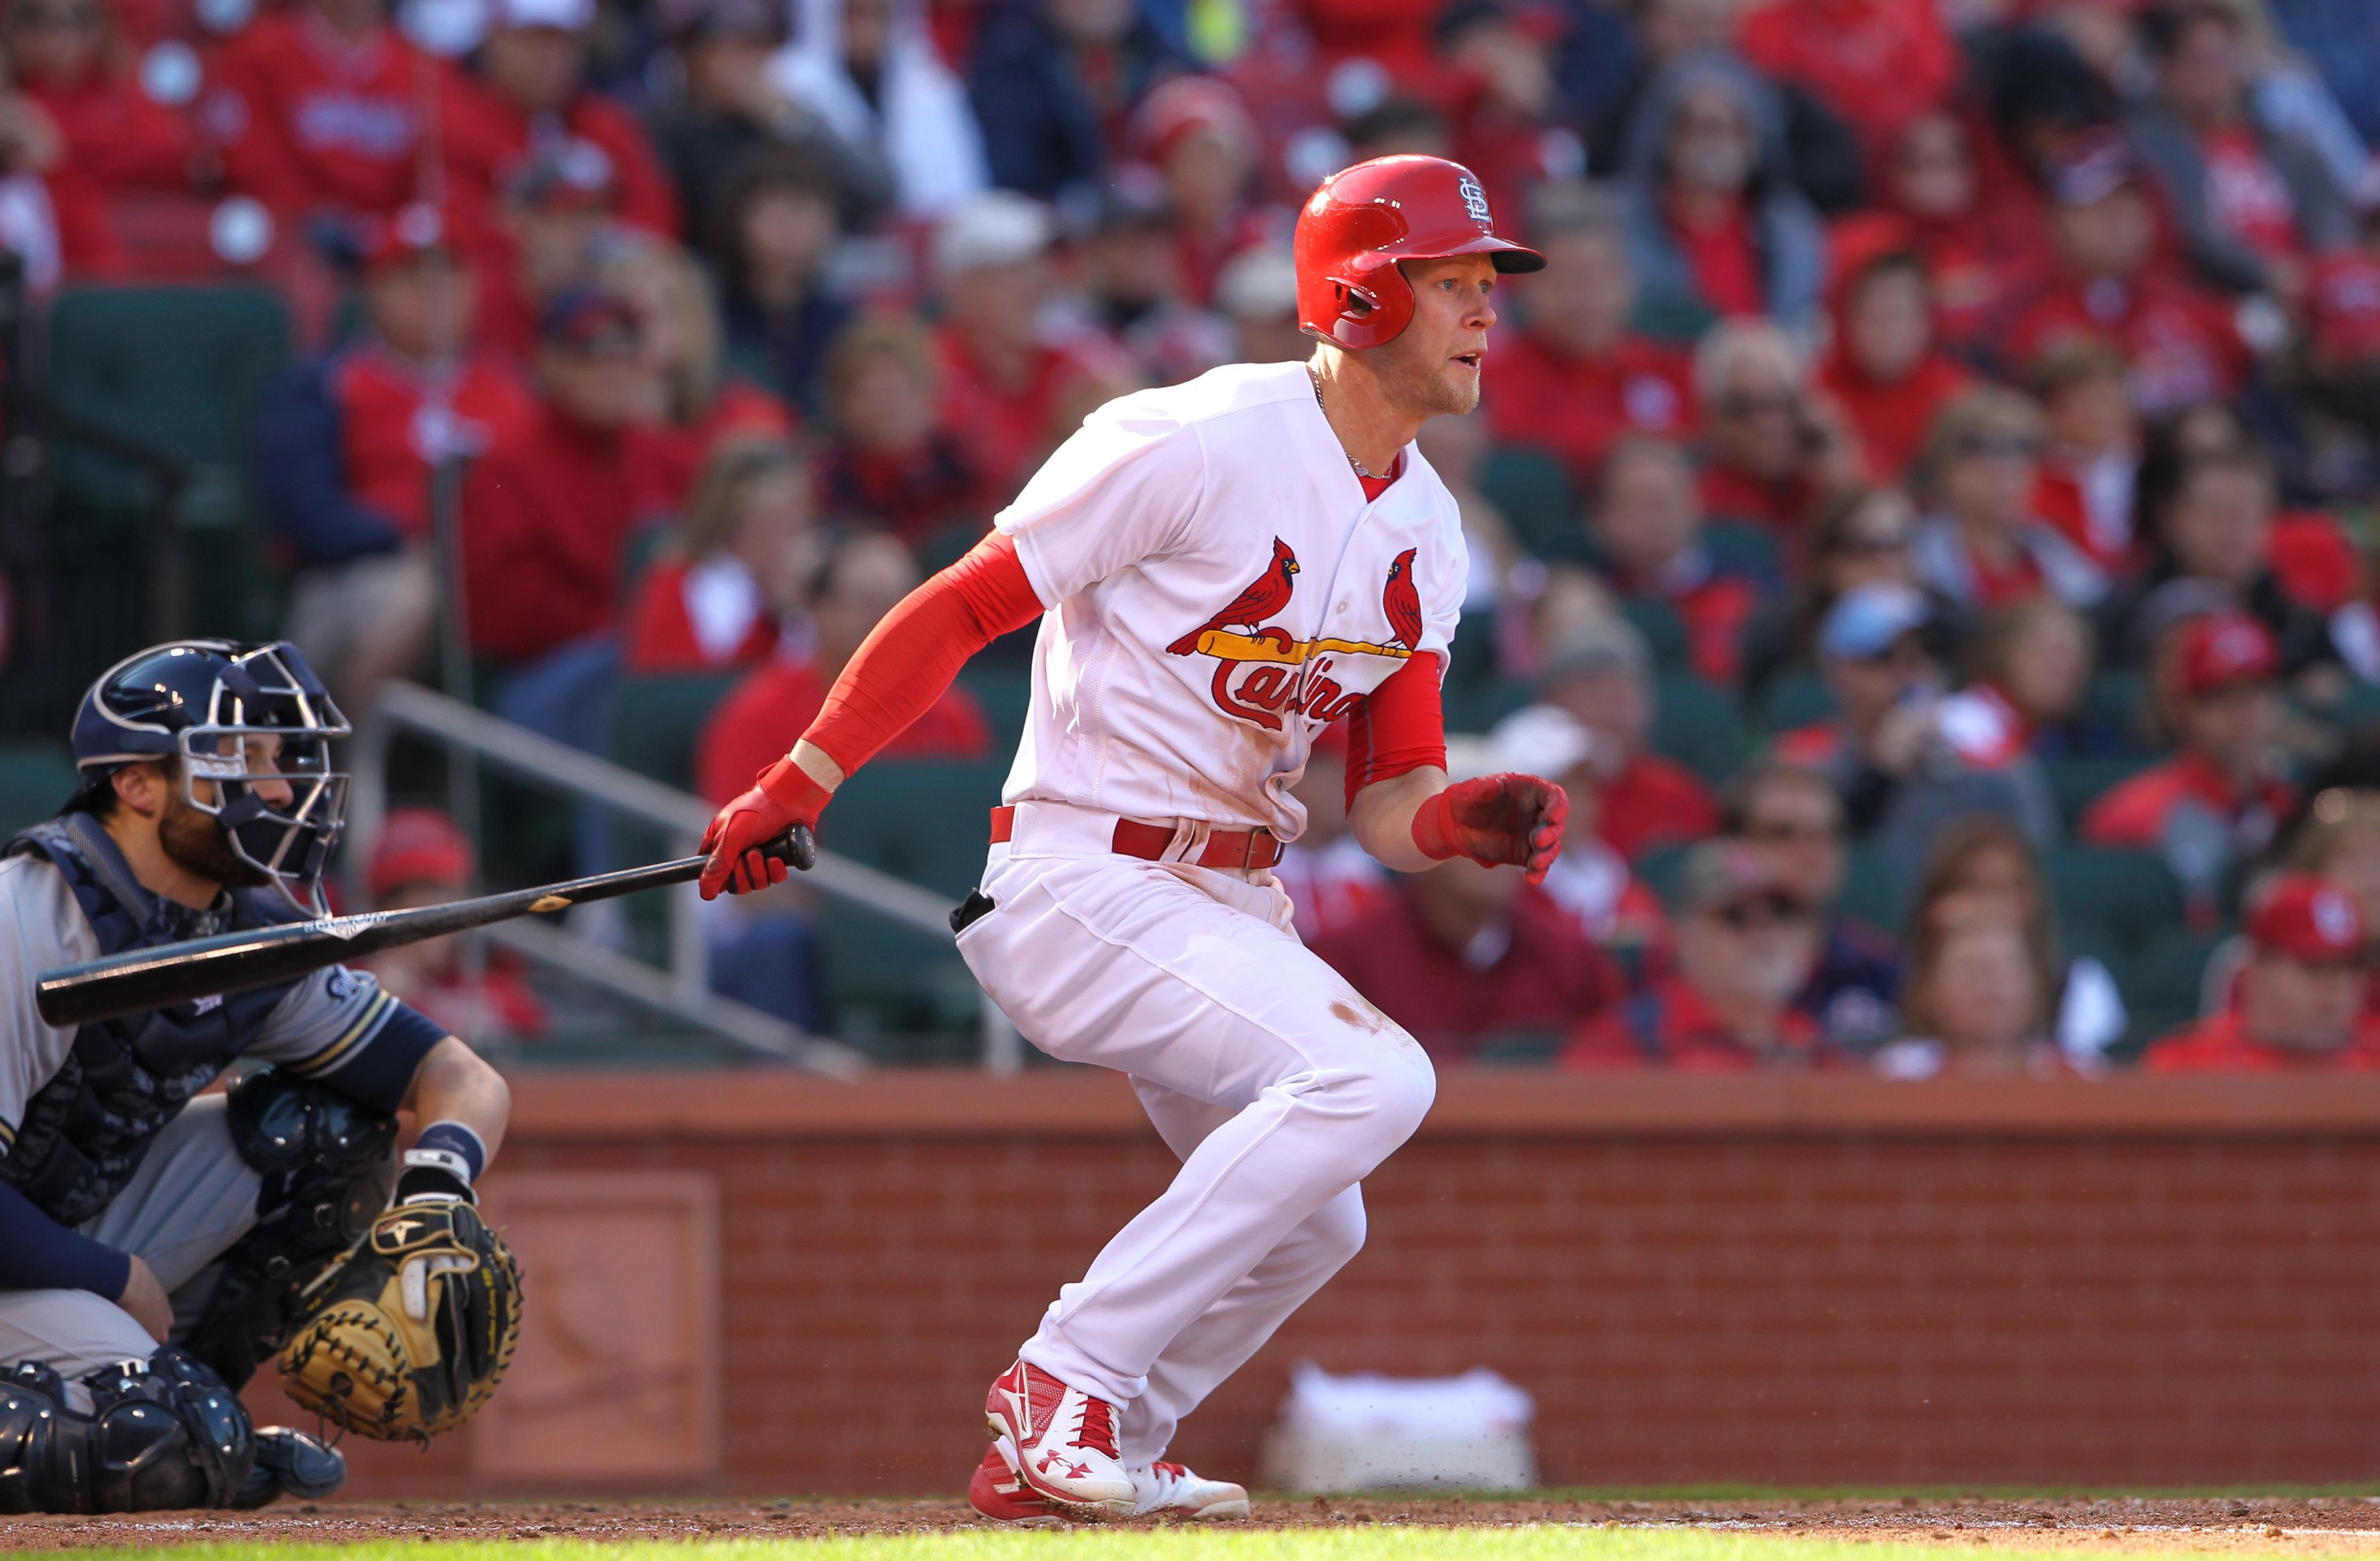 St Louis Cardinals High Quality Wallpapers